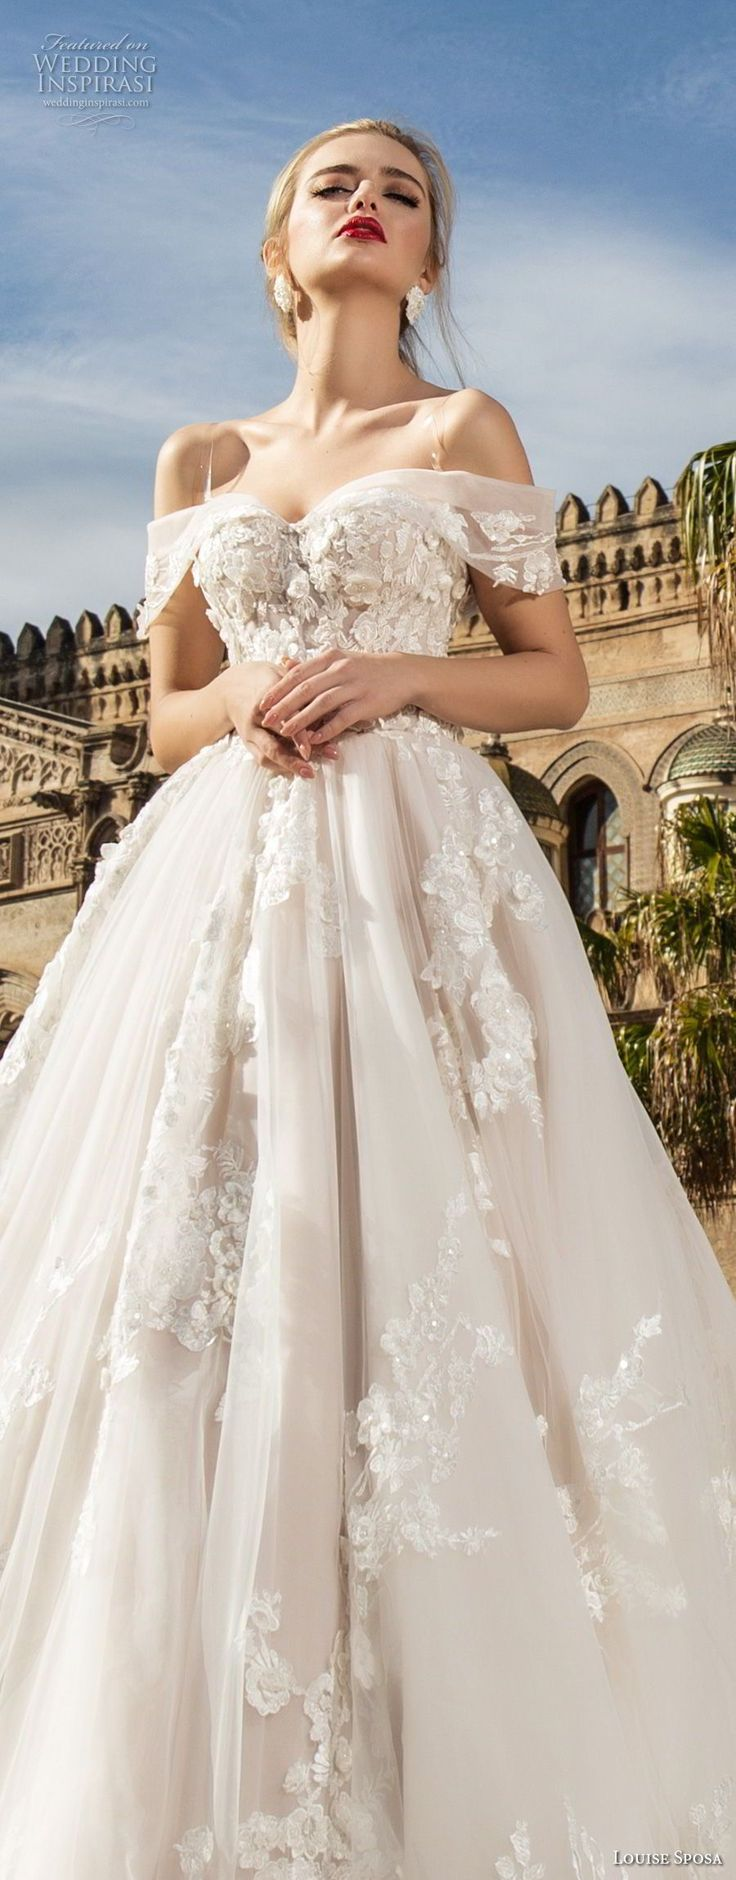 best wedding images on pinterest weddings gown wedding and